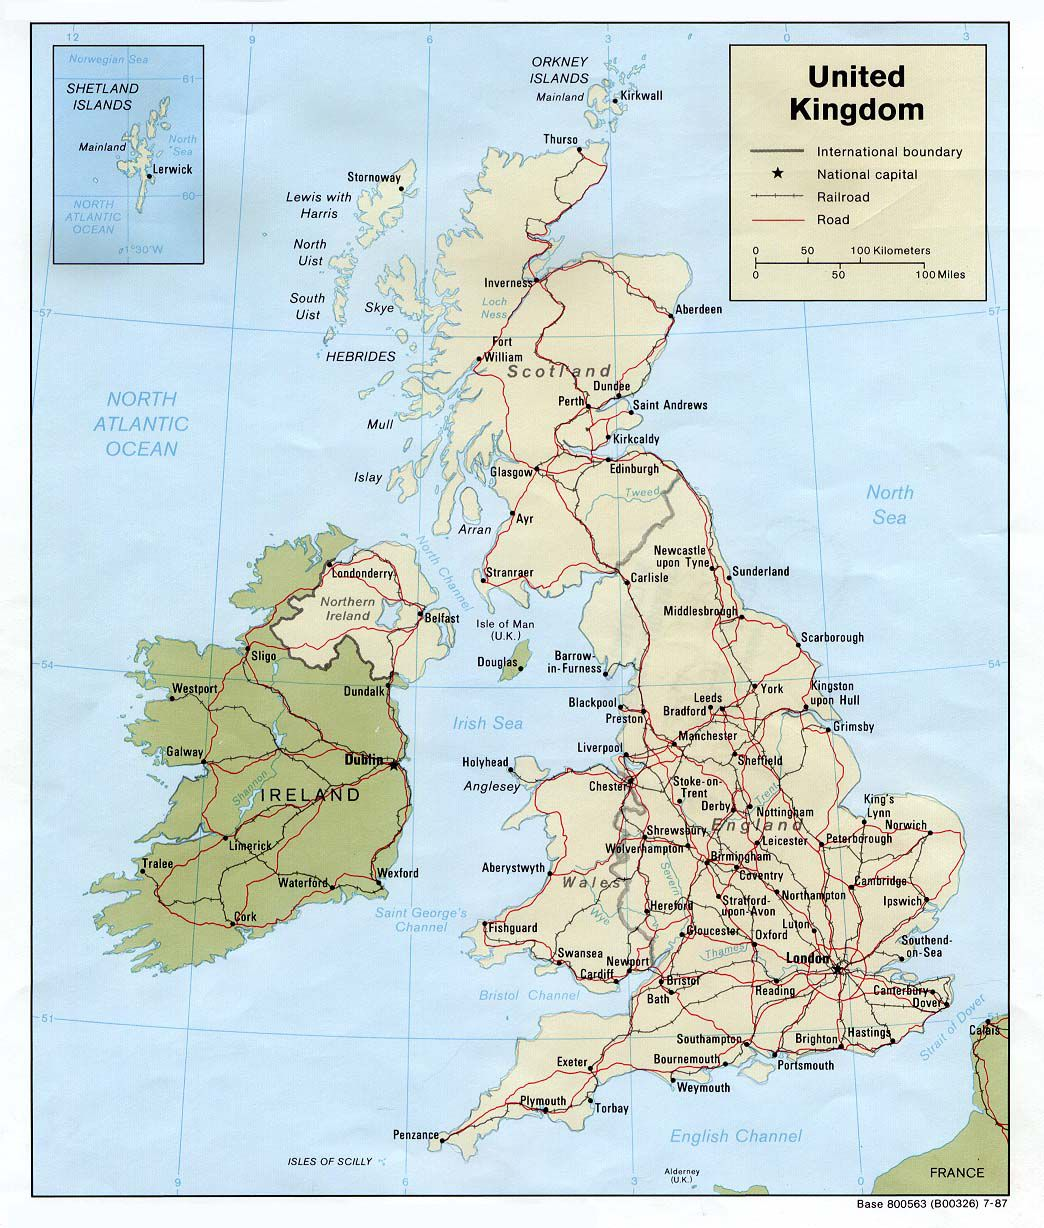 UK Regional Maps | United Kingdom Map Regional City Province